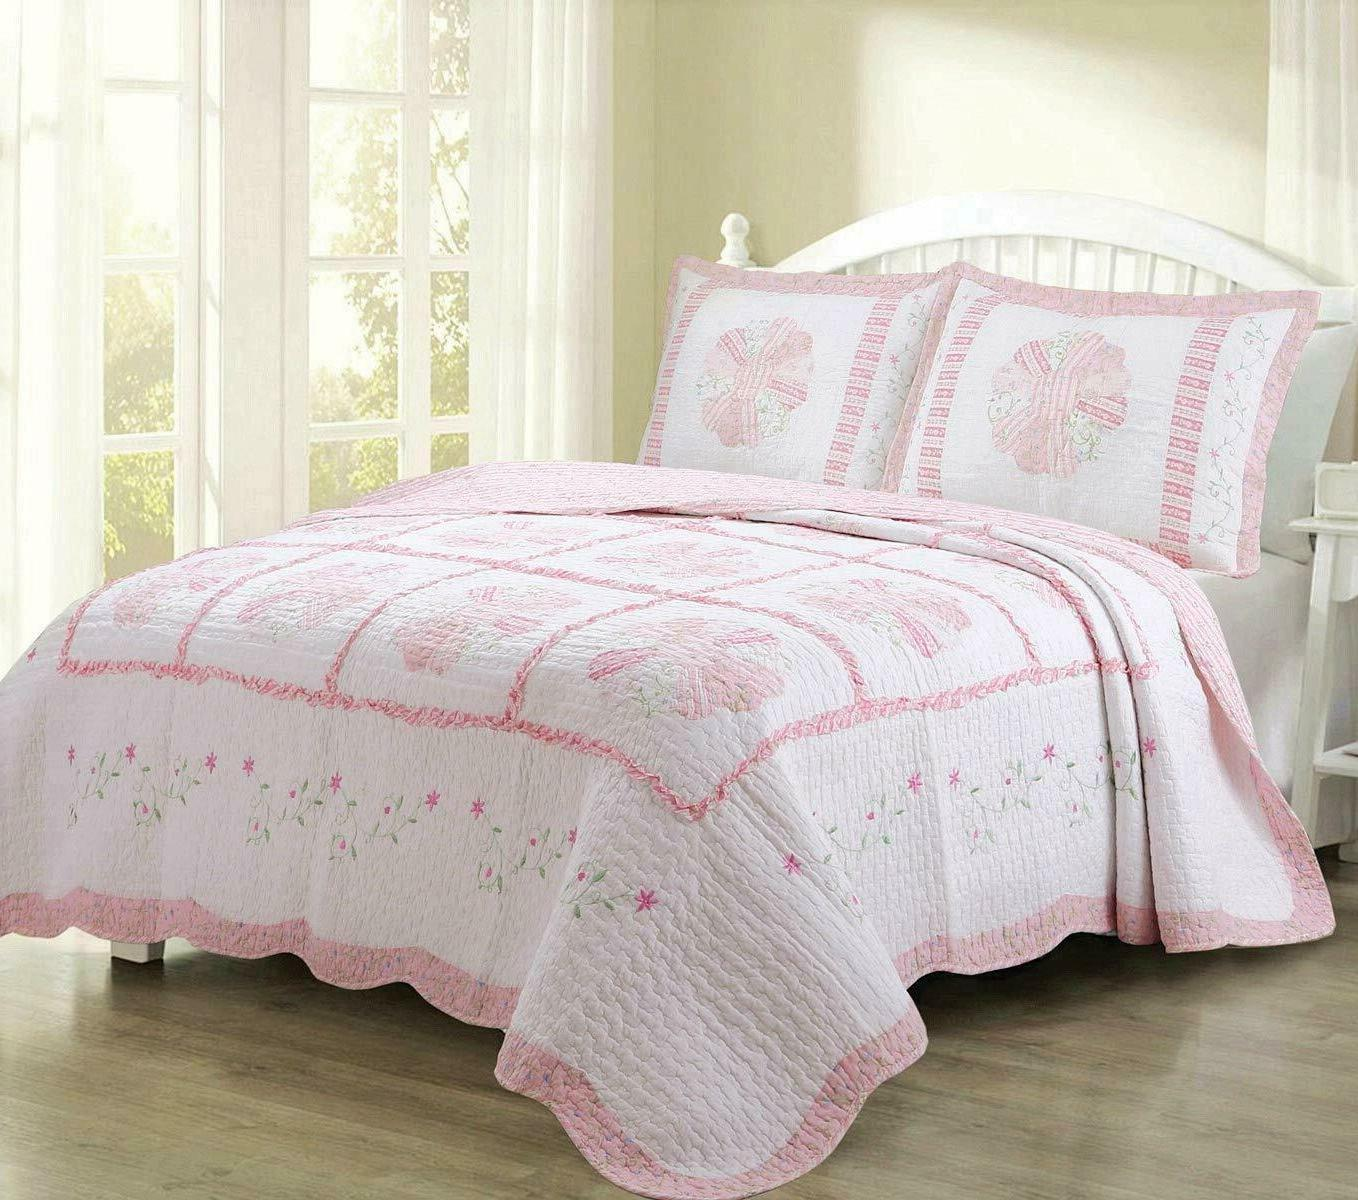 King Quilt Set Colorful Pink Floral Chic Home Decor Bedding